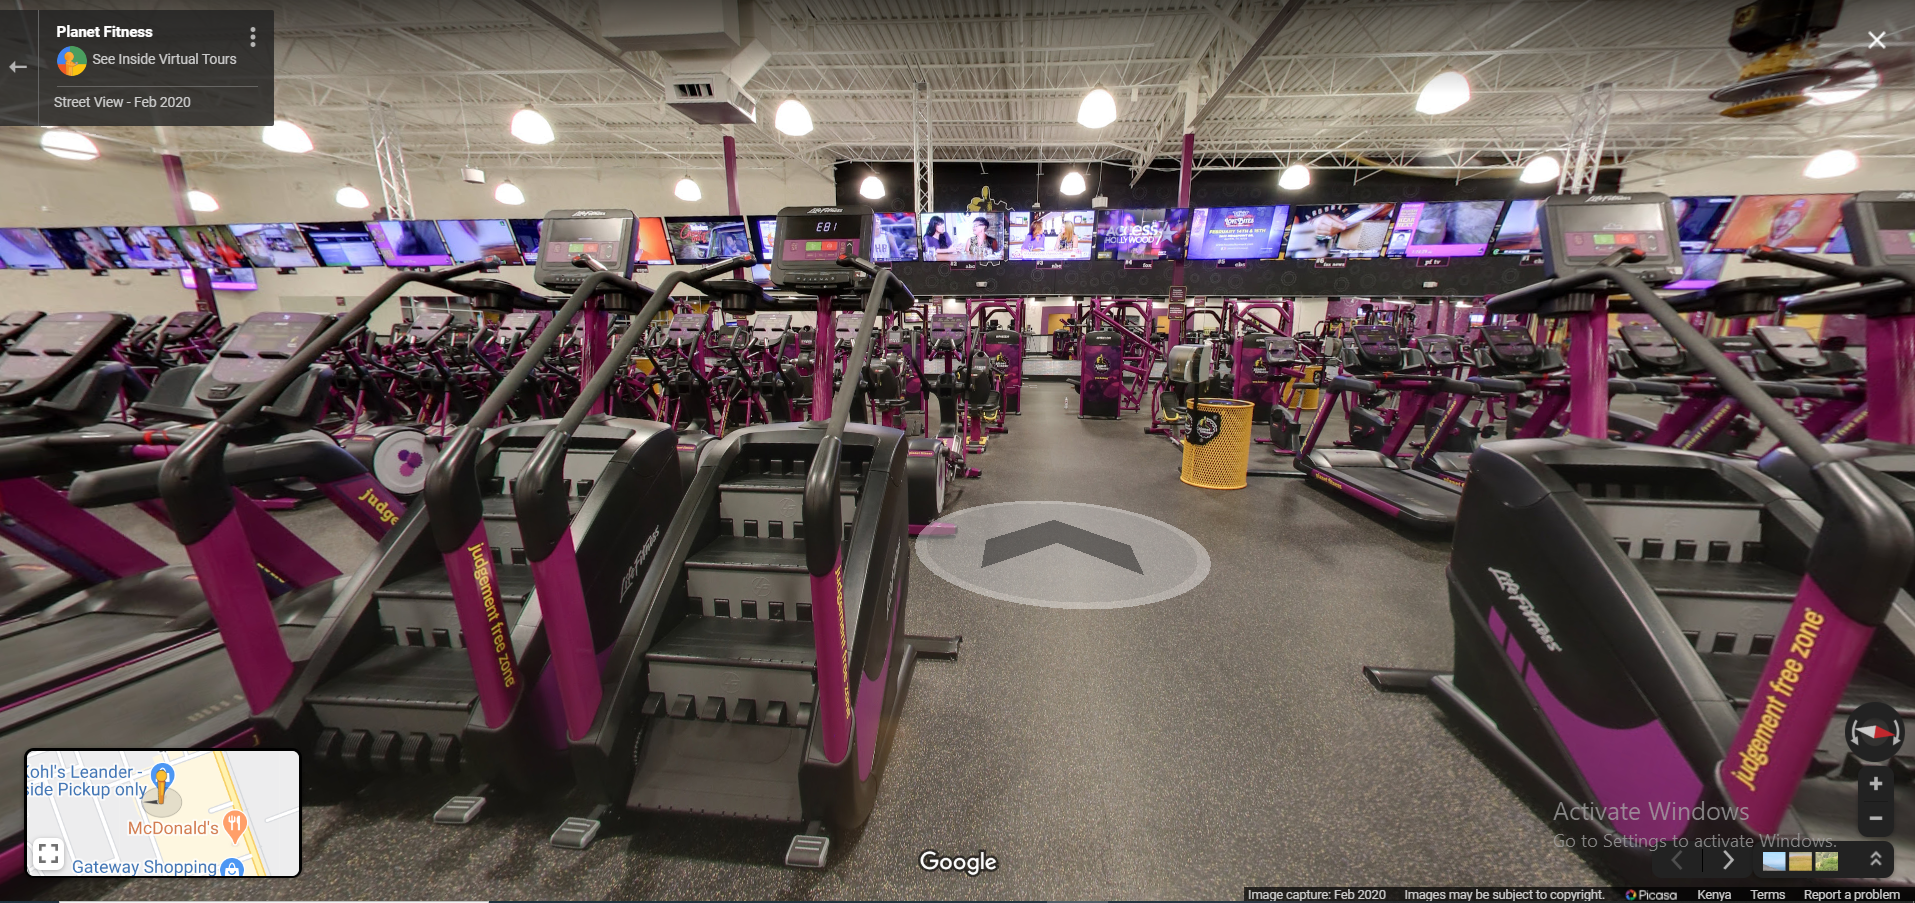 Fitness See Inside Virtual Tours